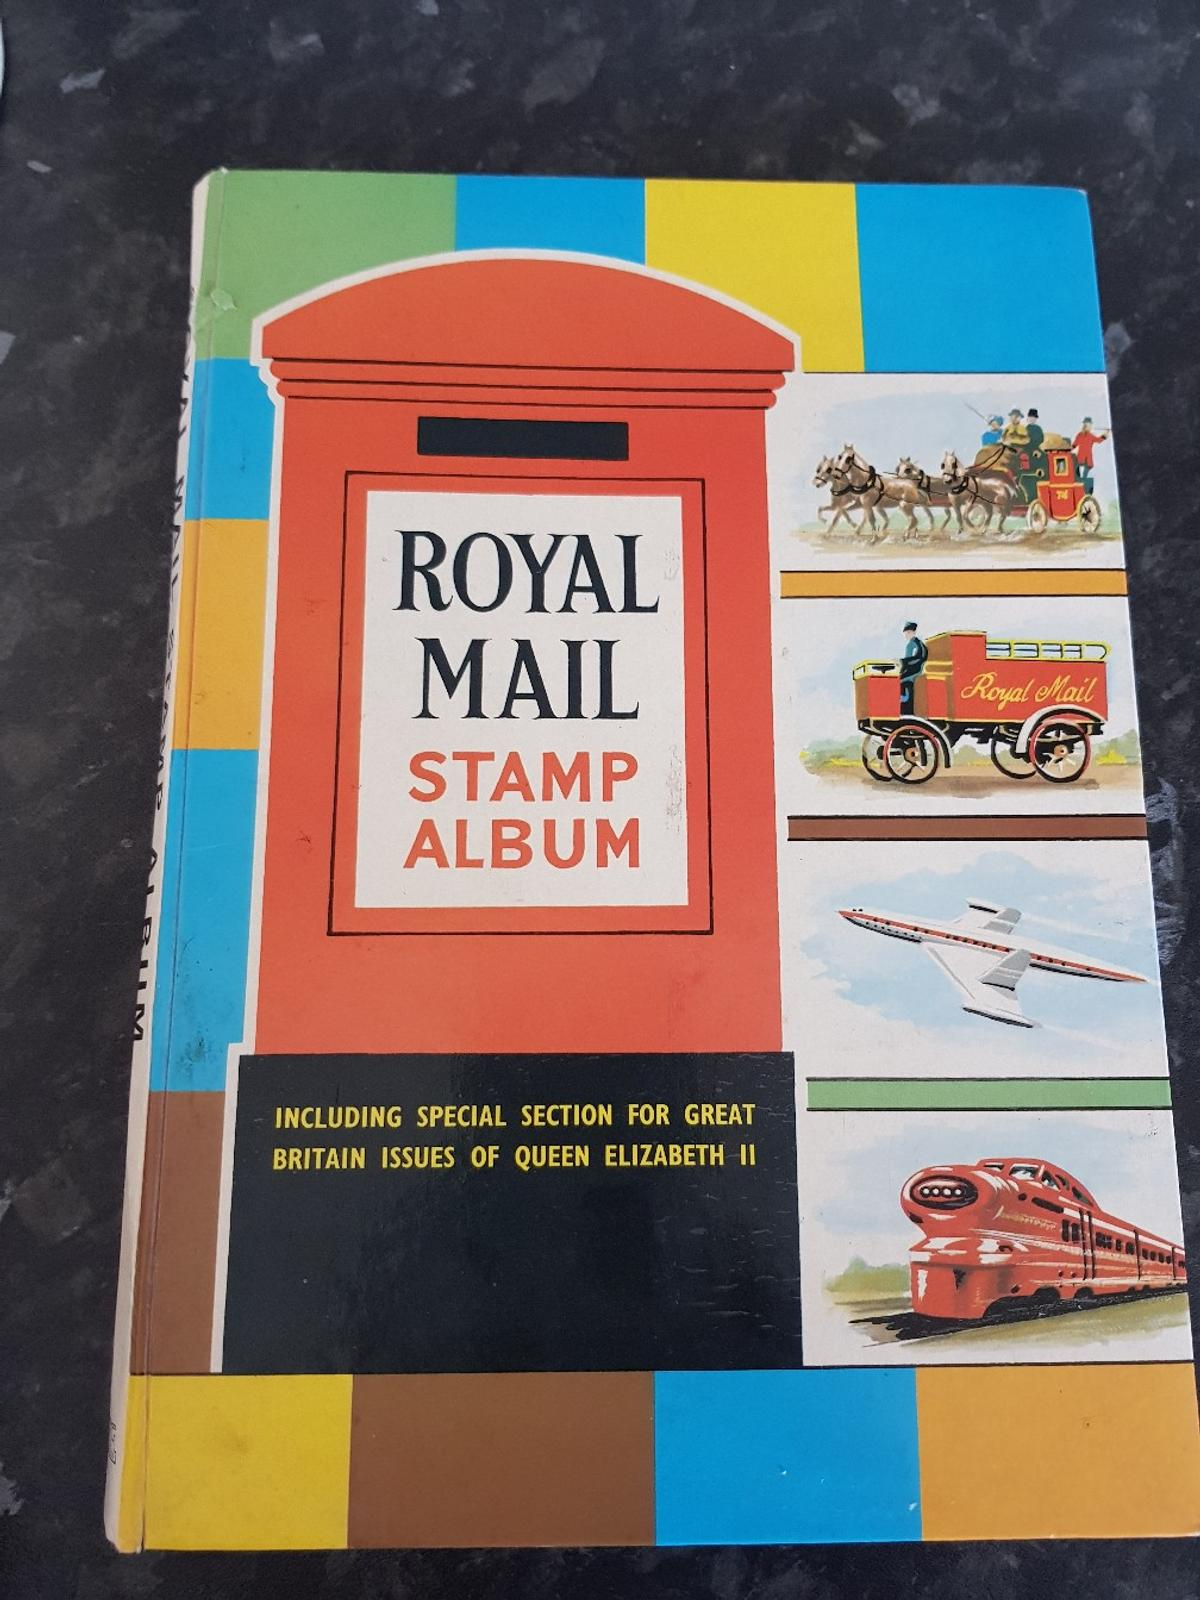 this stamp book has over 450 interesting stamps... for example the one penny red.. 1966 queen Elizabeth British birds.. 1966 Christmas stamps and 1967 famous British paintings 1967/1968 silver jubilee three half pence stamp..loads of British stamps and may other countries grab a bargain on this lot for £350 no offers tell 07751187673